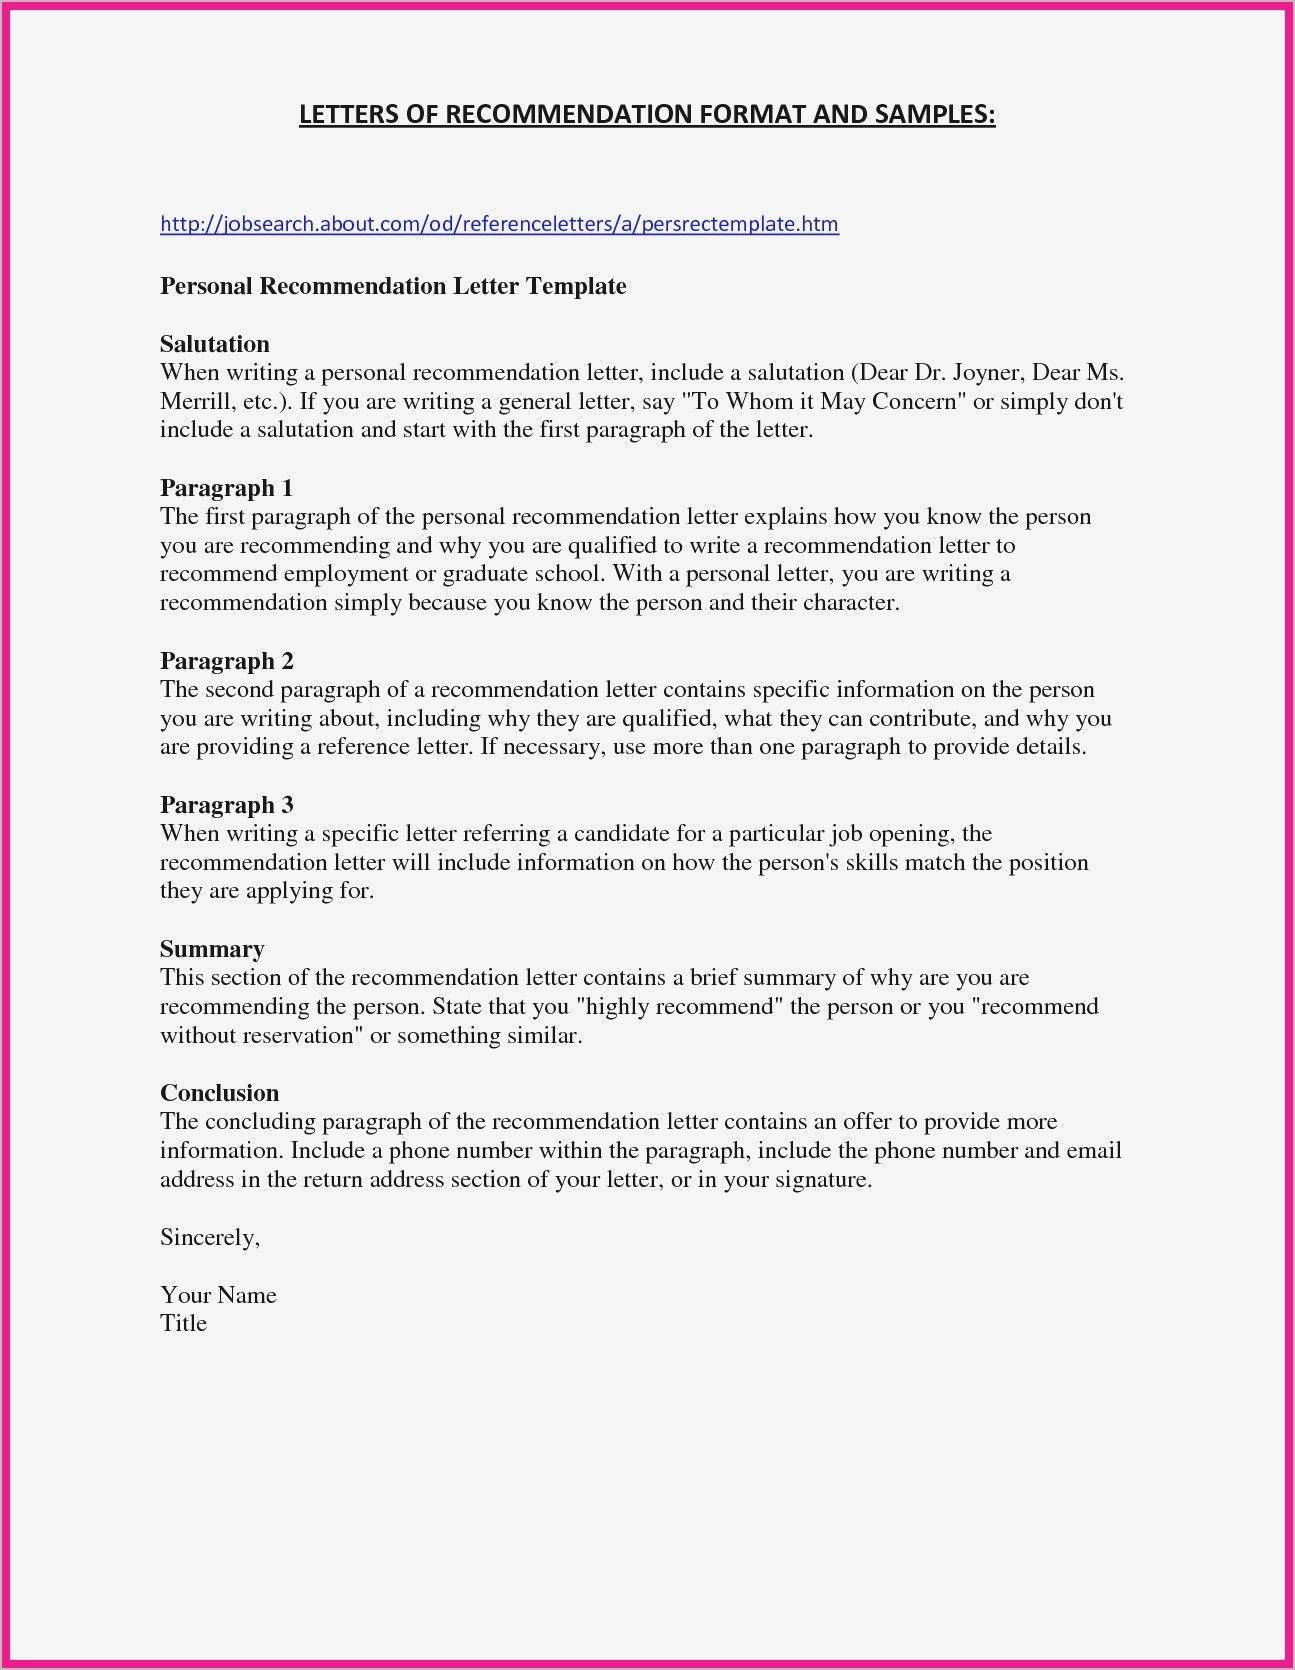 001 Remarkable Personal Letter Of Recommendation Template High Resolution  Sample Character Reference AssistantFull